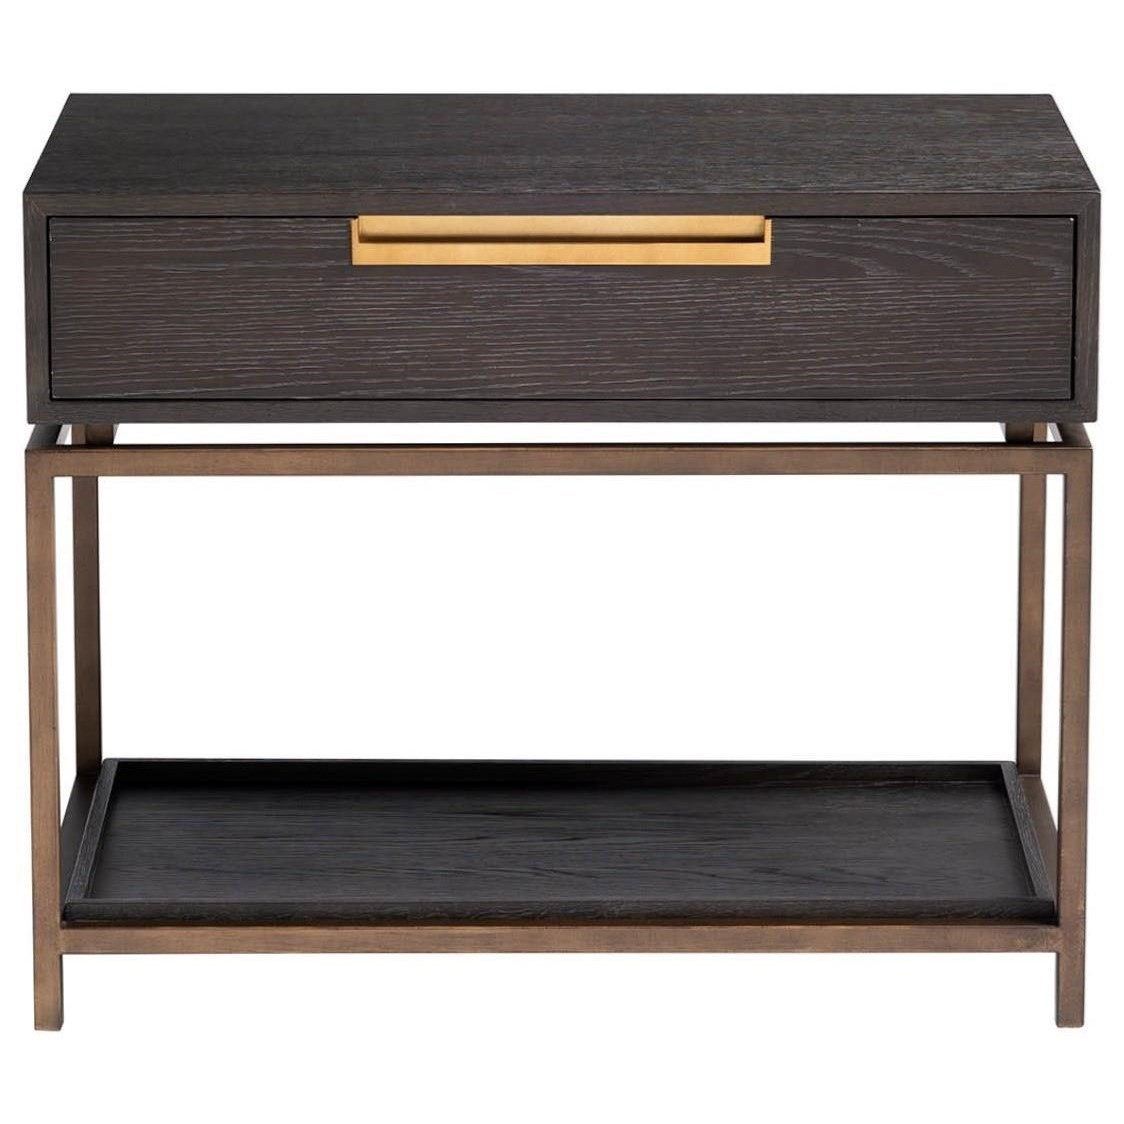 Modern - Onyx Gable Night Table by Universal at Baer's Furniture